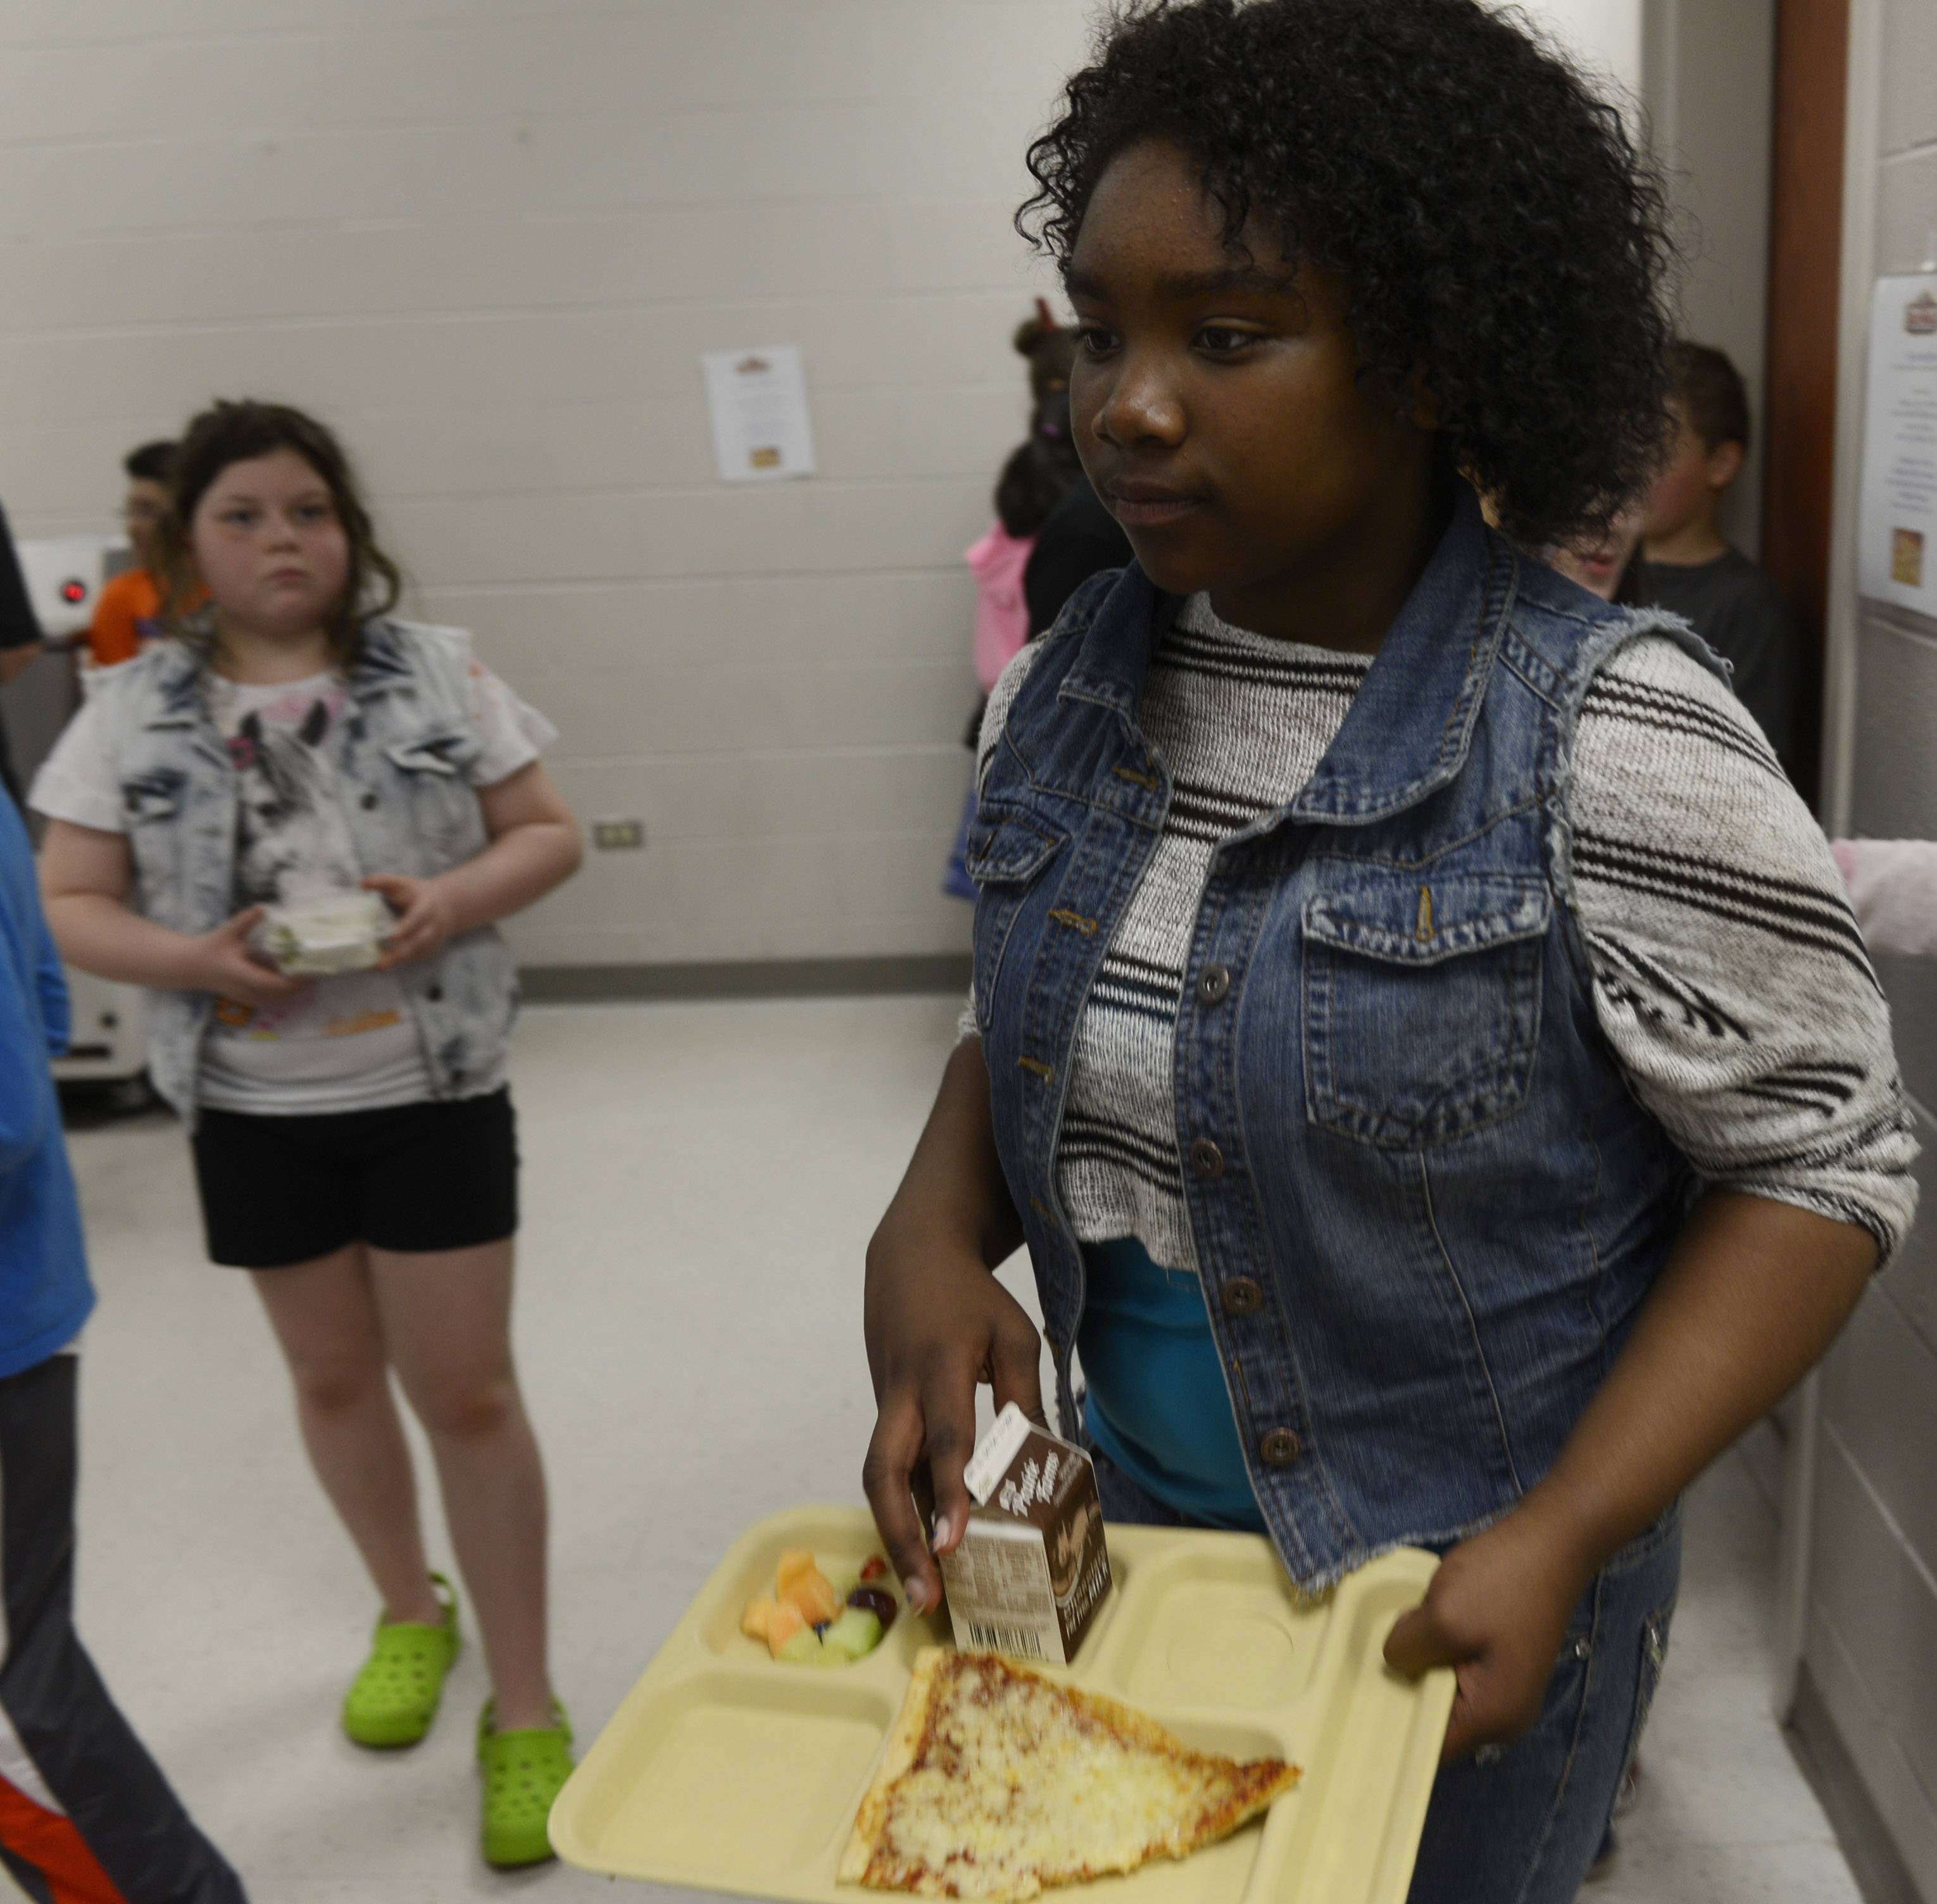 Fifth-grader Kayla Evans has a slice of whole-grain pizza and a serving of fruit on her tray as she makes her way through the lunchroom line in May at Fremont Intermediate School near Mundelein.